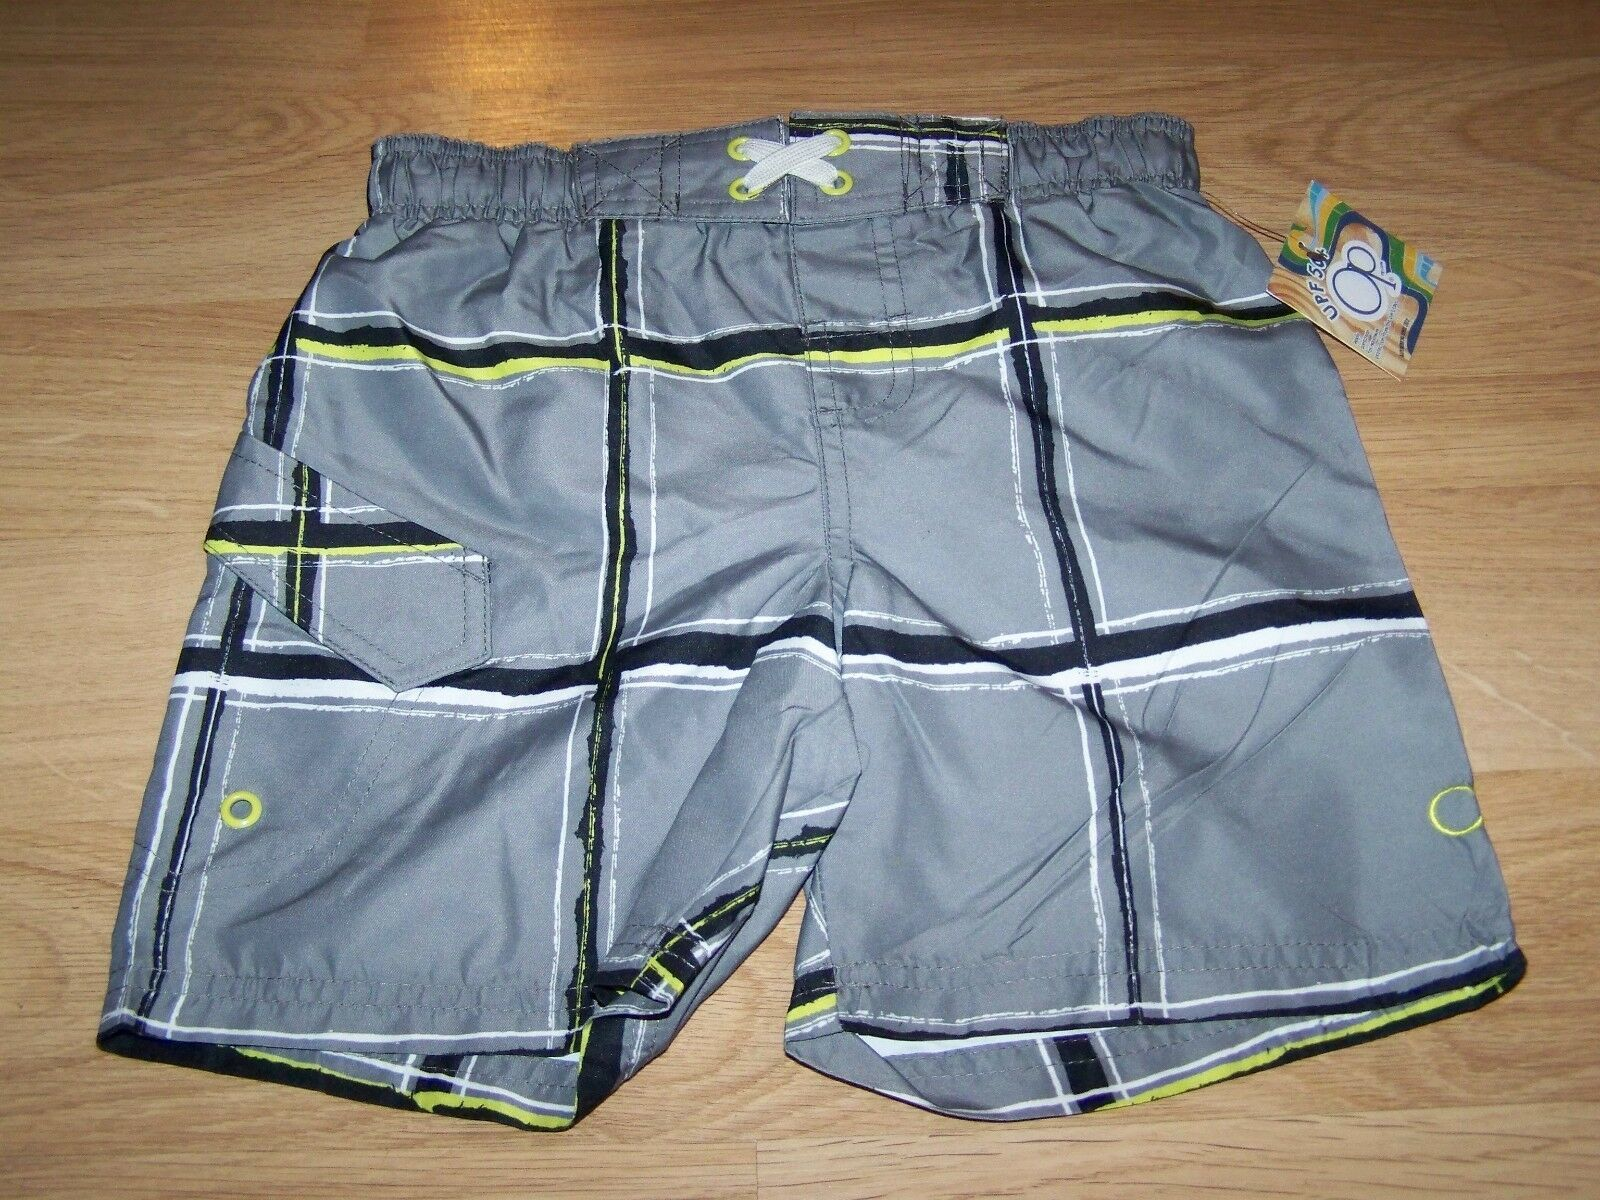 Primary image for Size XS 4-5 OP Ocean Pacific Board Shorts Swim Trunks Gray Black White Lime New